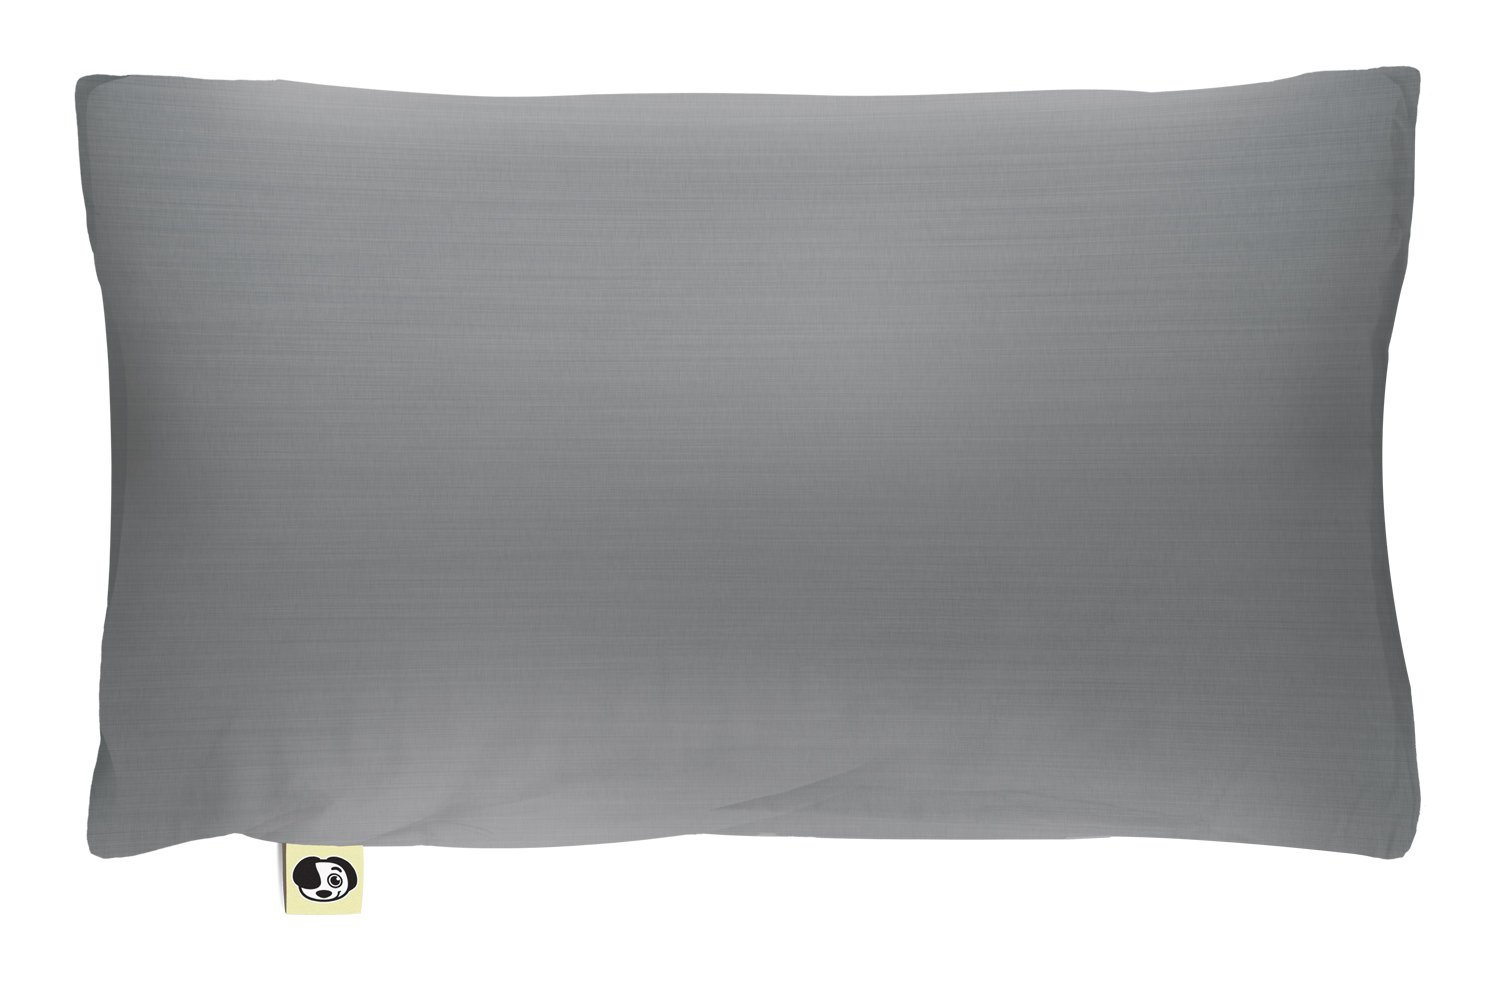 The Shrunks Natural Fibre - Water-Proof Toddler Pillow and Cover, Grey 89061